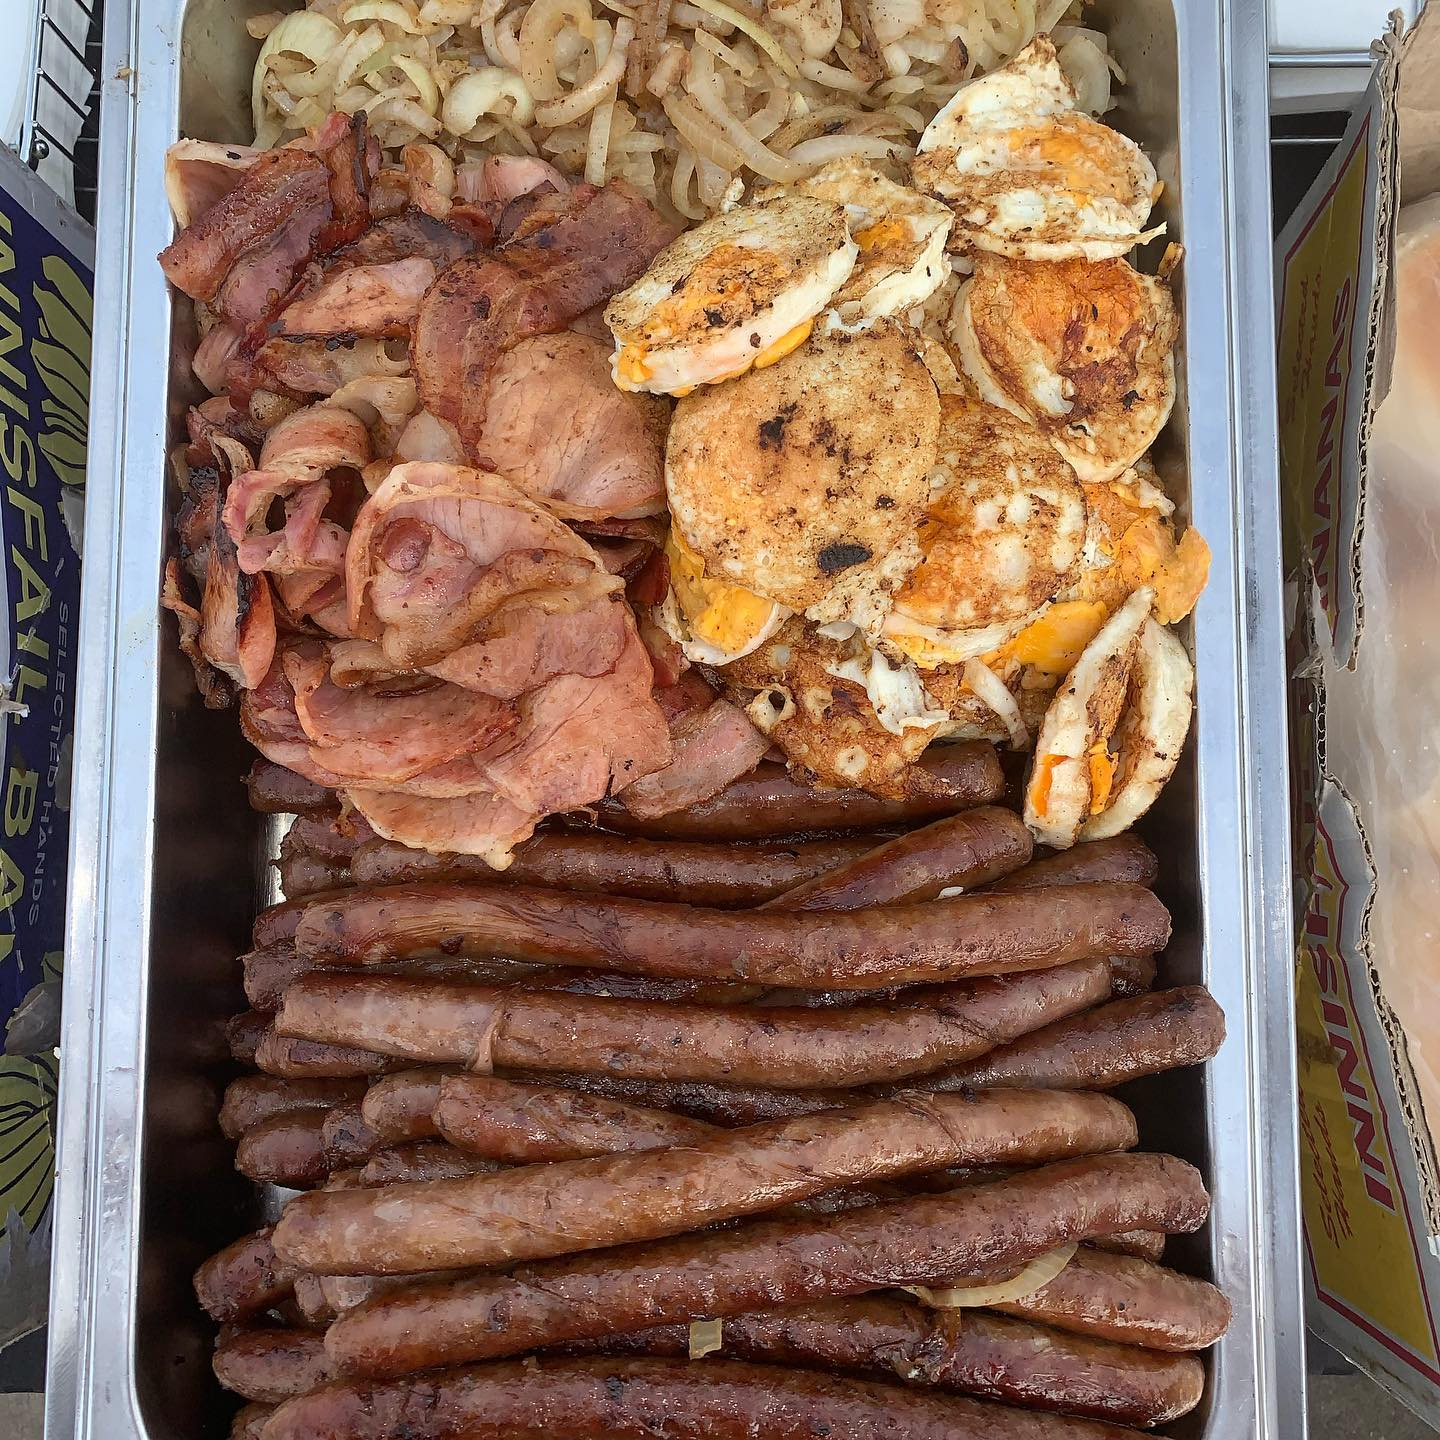 GABBQ Breakfast